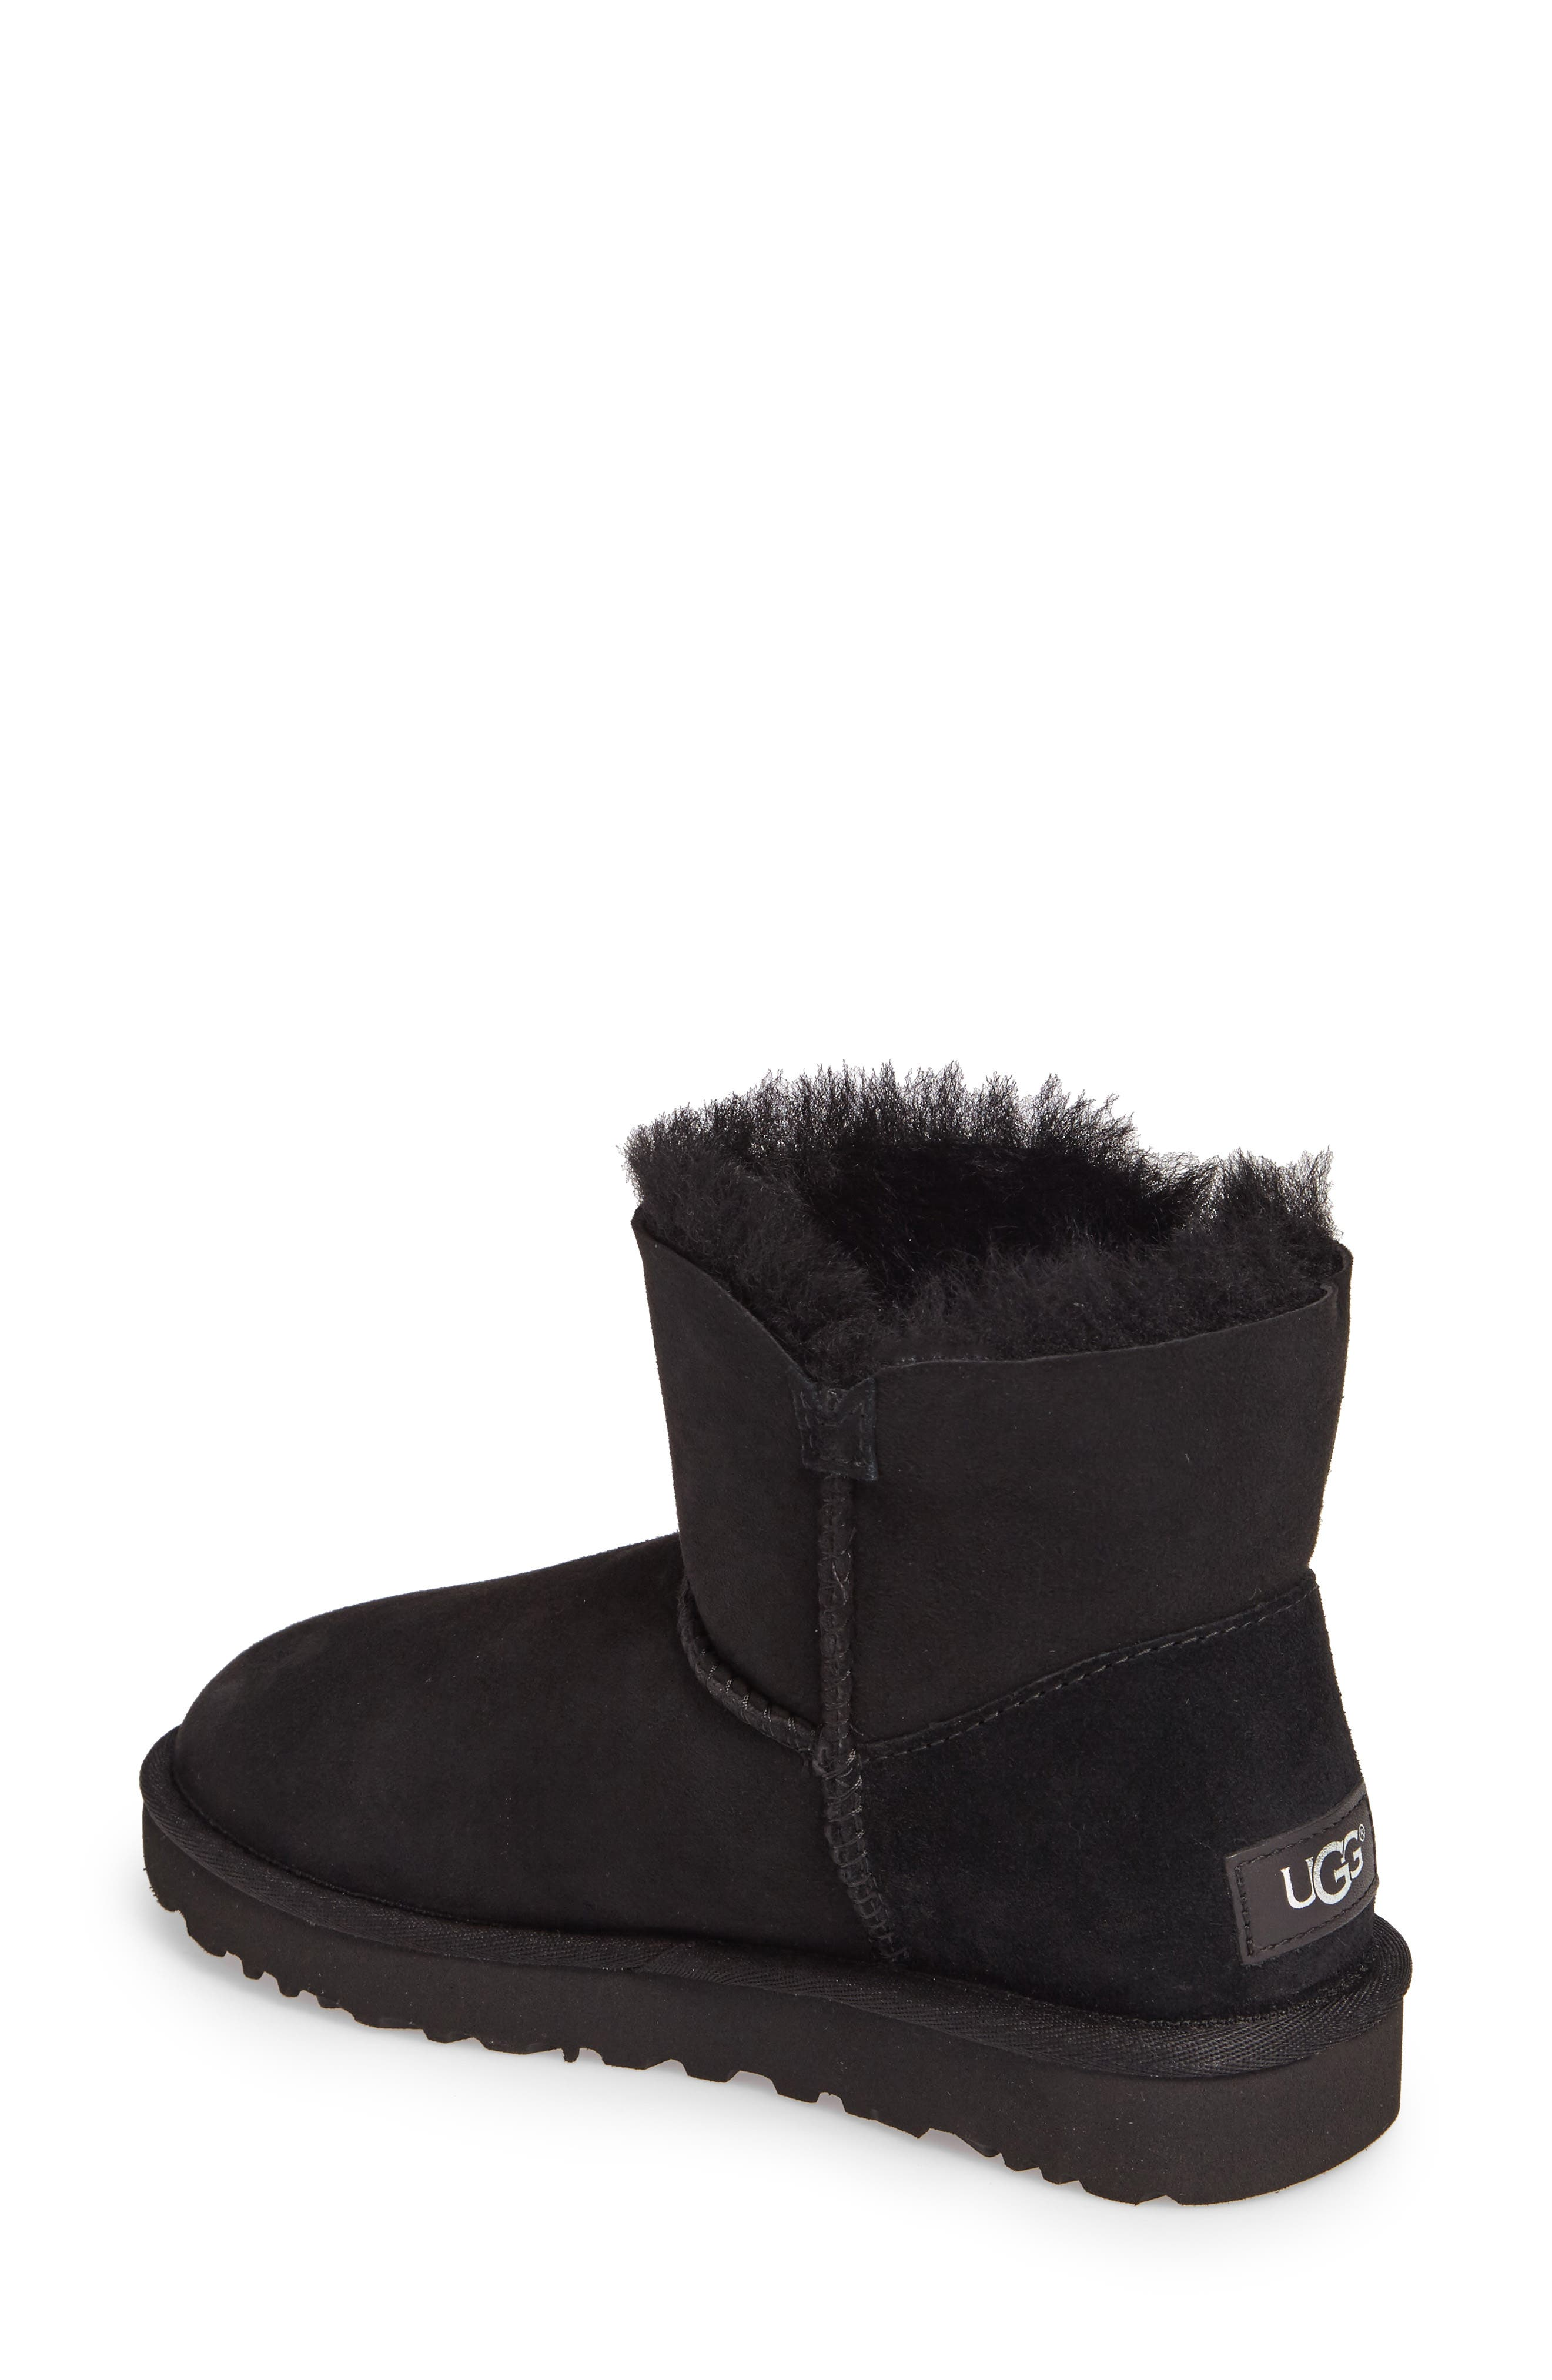 Alternate Image 2  - UGG® Bailey Petal Genuine Shearling Lined Mini Boot (Women)